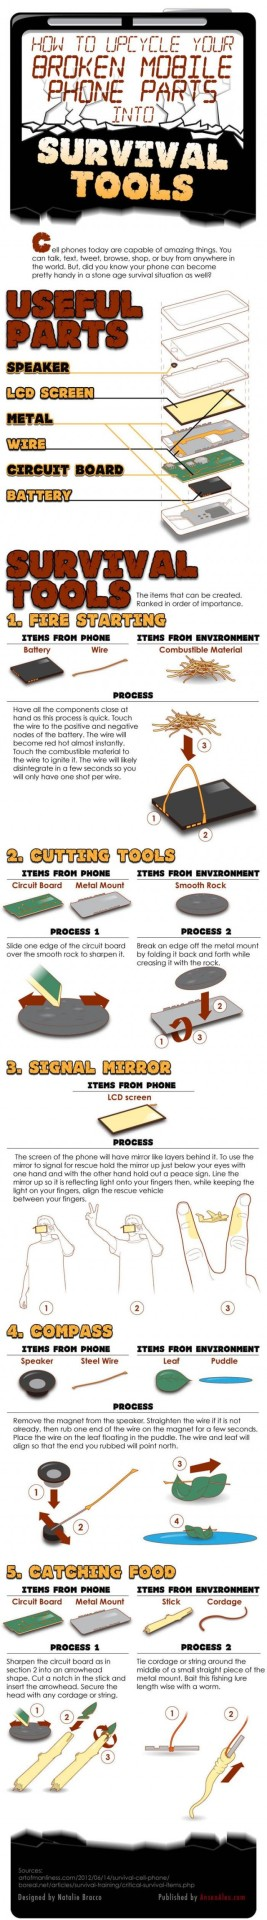 How To Use Your Cell Phone as a Survival Tool [Infographic]http://daily-infographic.tumblr.com/